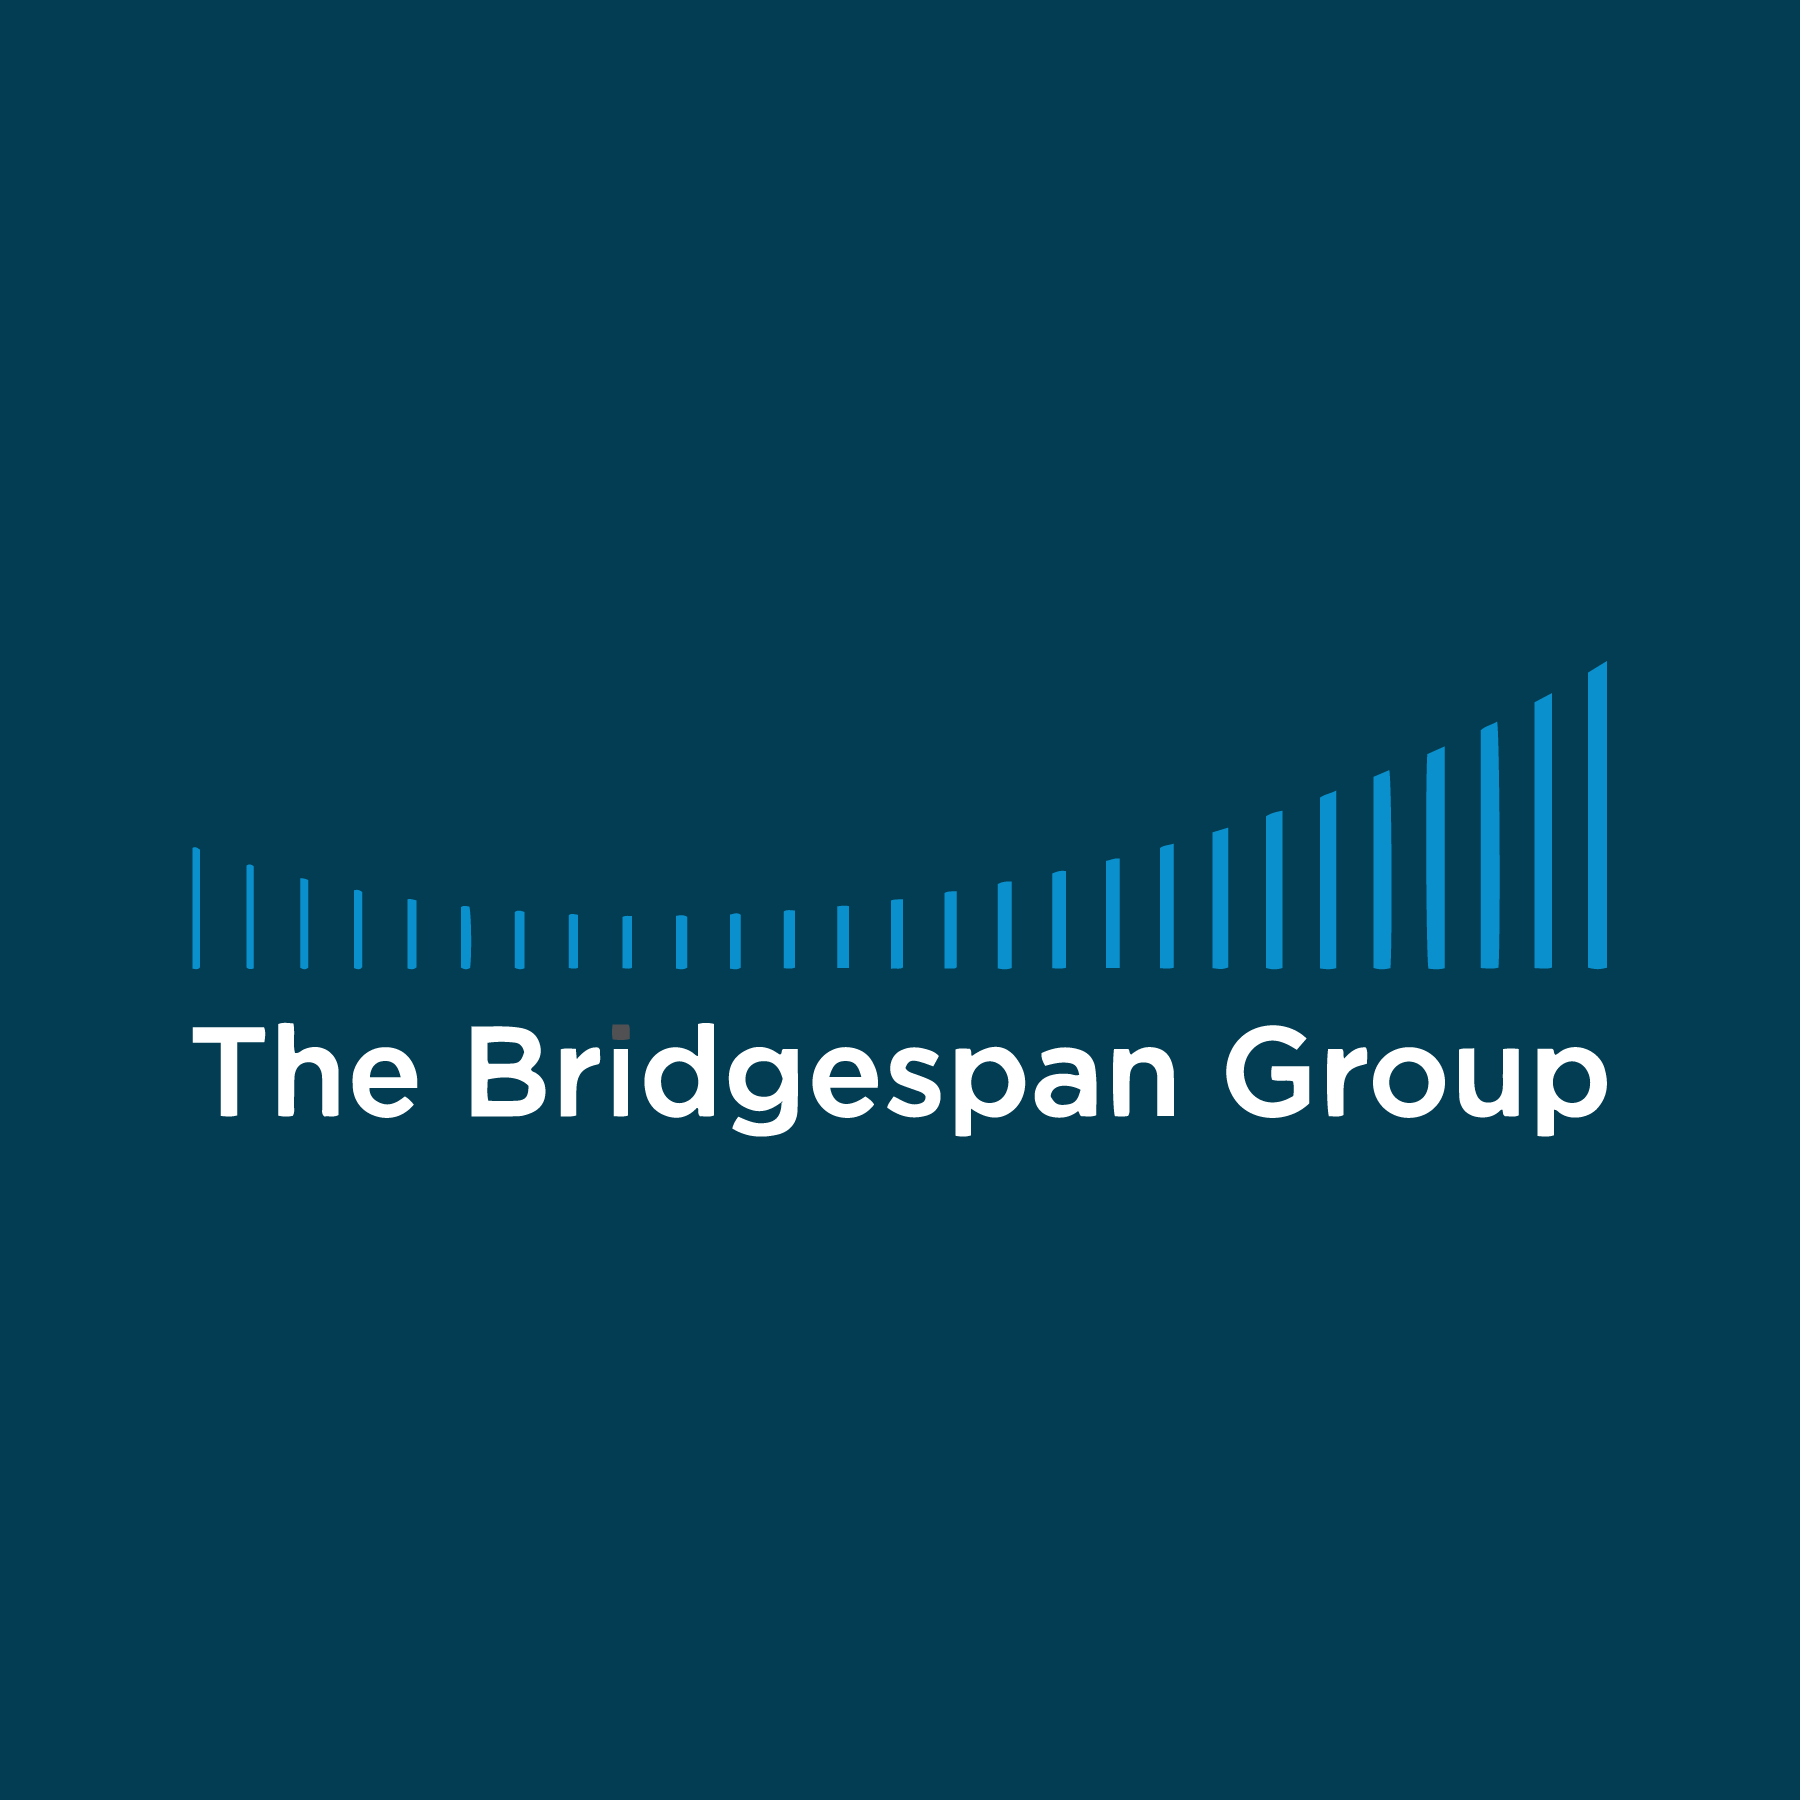 The Bridgespan Group - Aim & Arrow Group